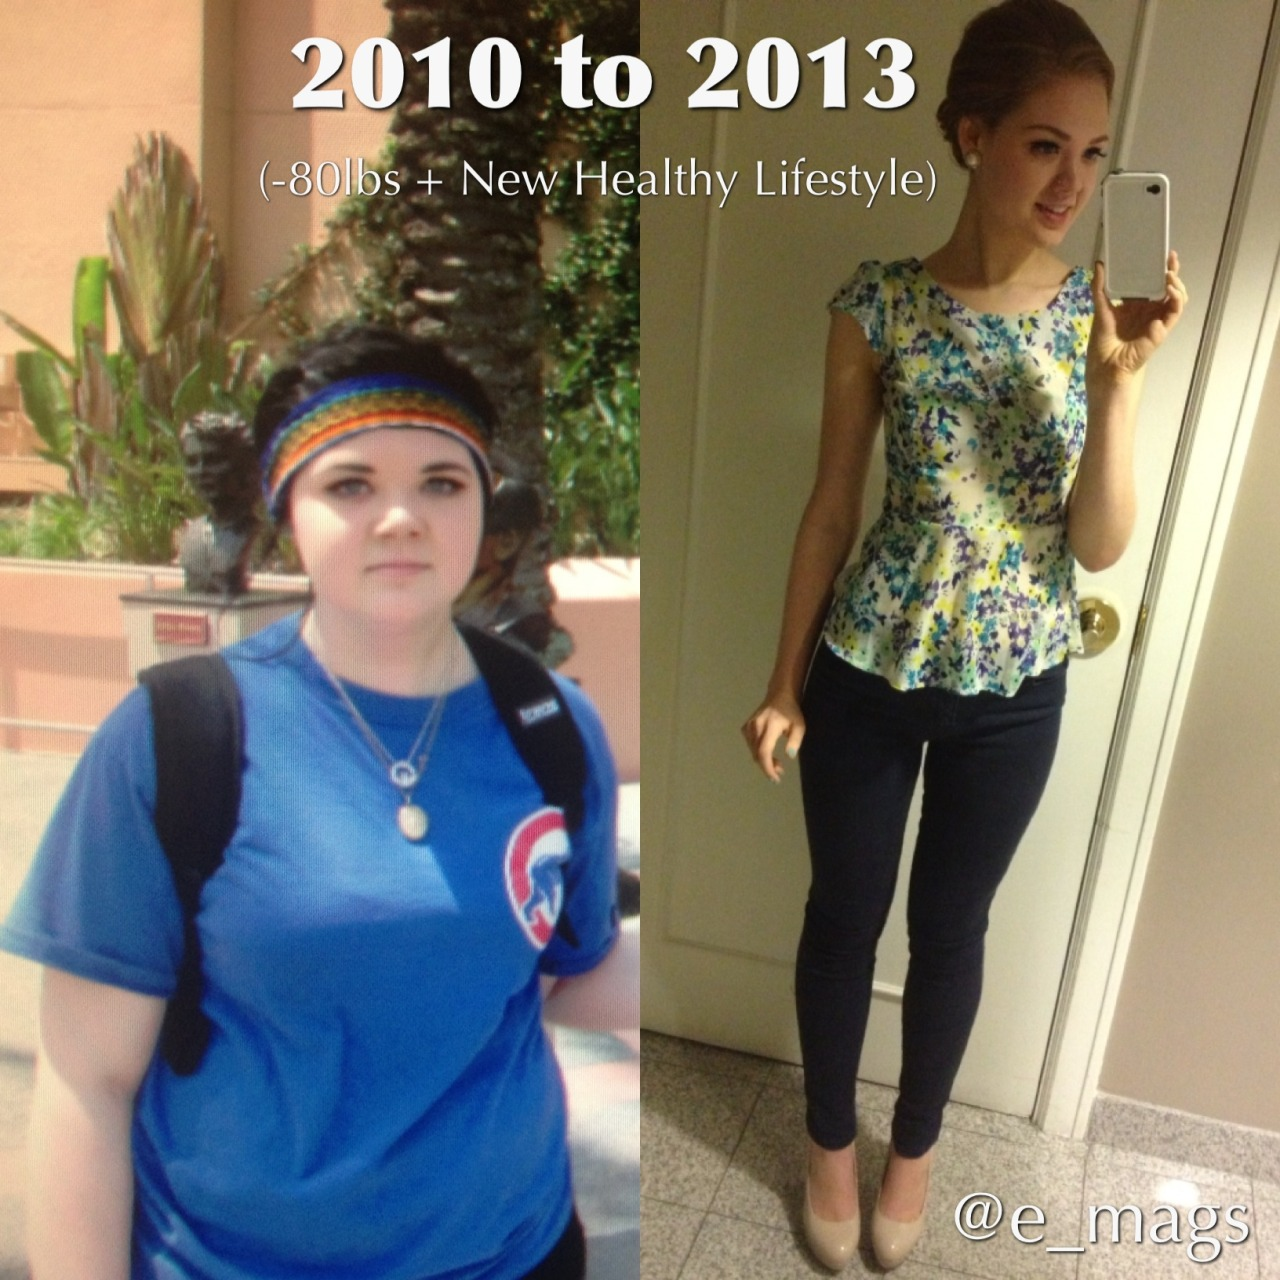 """beforeandafterfatlosspics:ellenkeepsitcleanYou can do anything you set your mind to! Just NEVER stop trying! (5'9"""" US Size 18 to US size 3-4) Every little change gets you one step closer to your goal XOXO -Ellen"""